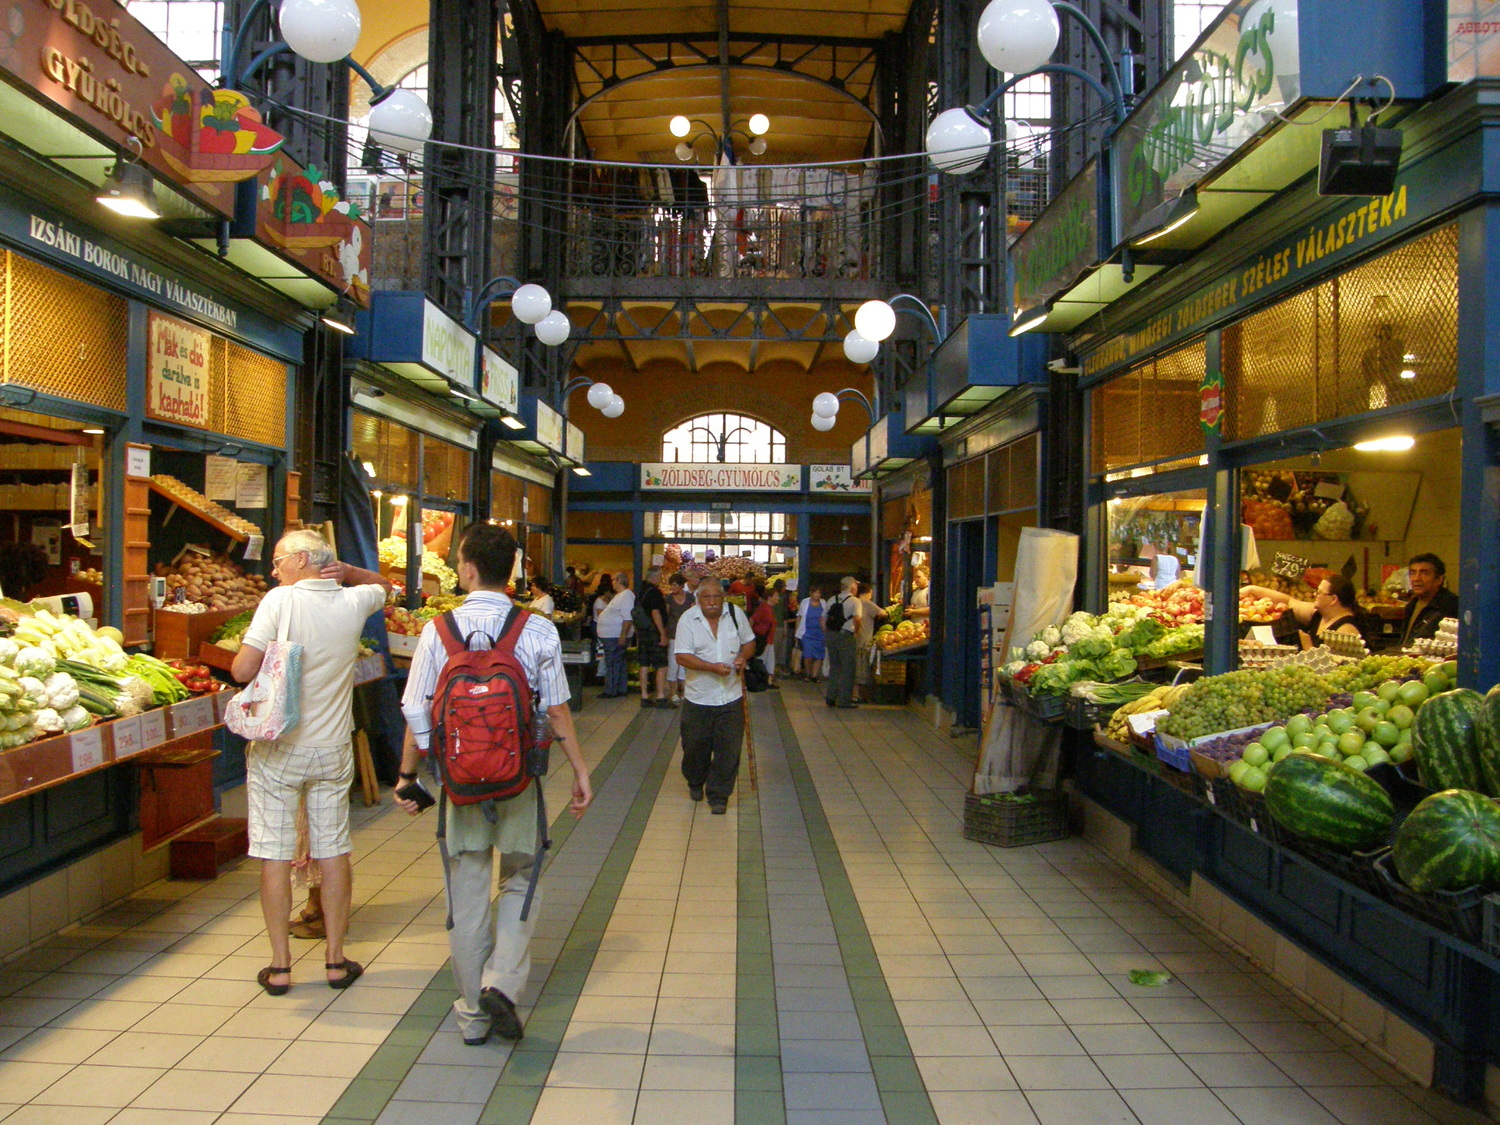 Trip to Hungary. Budapest market